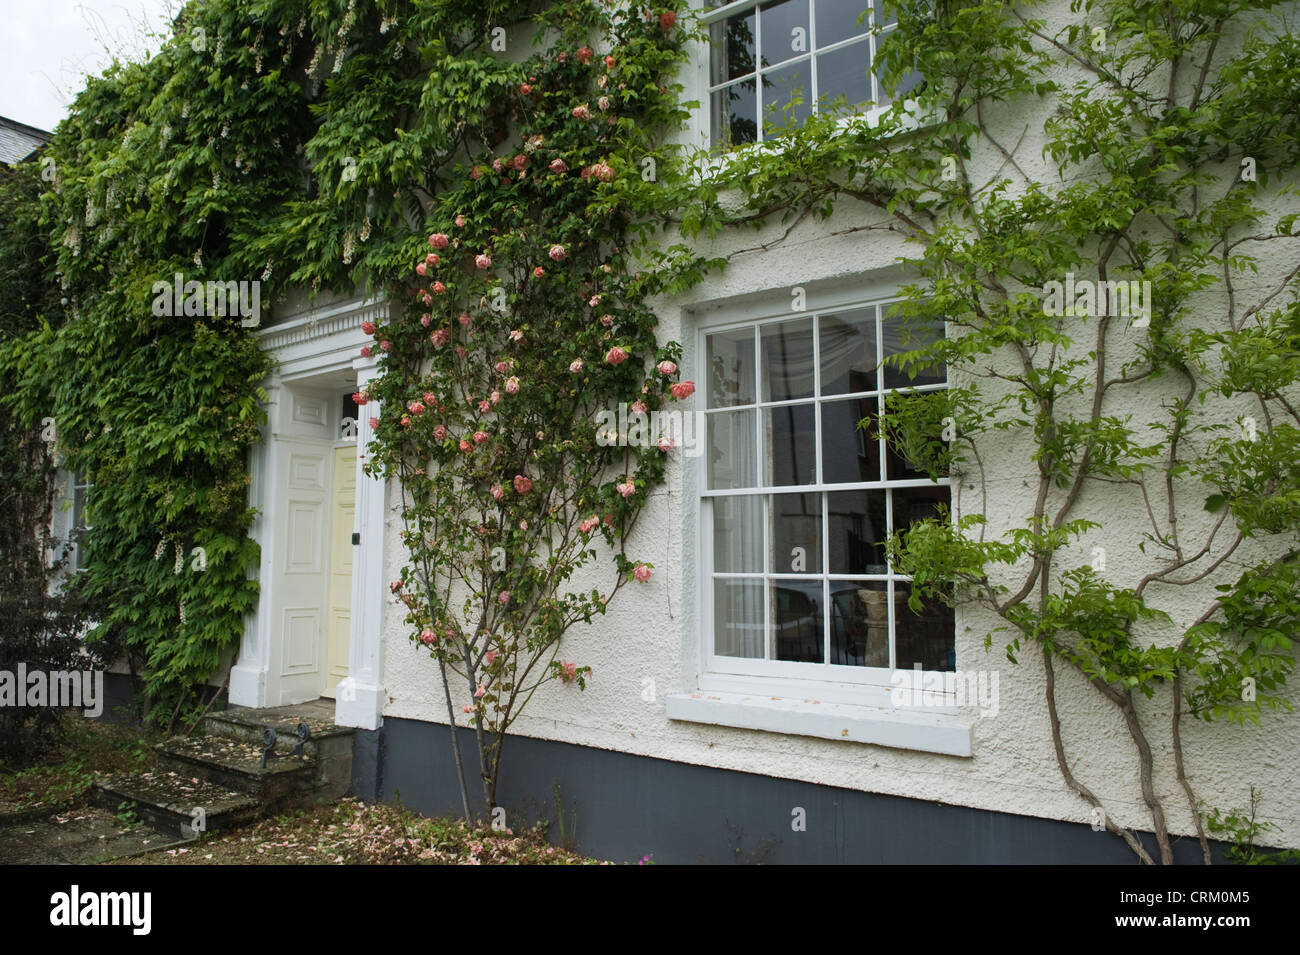 Large Period House With Sash Windows And Climbing Plants